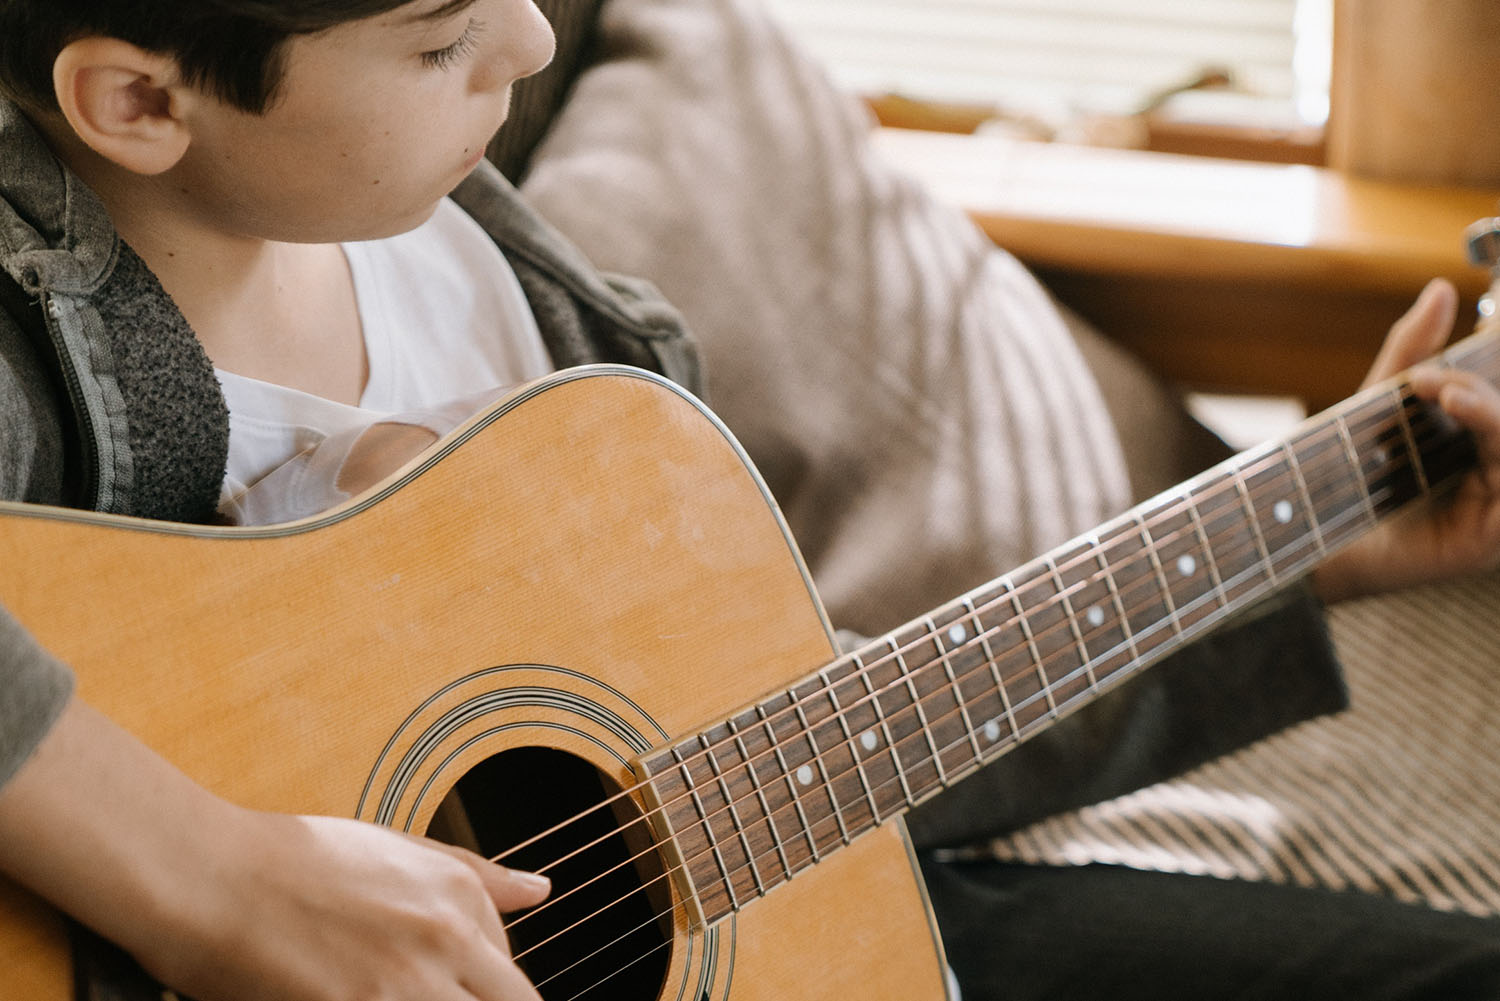 Guitar lessons rock at Greenwich Arts Academy